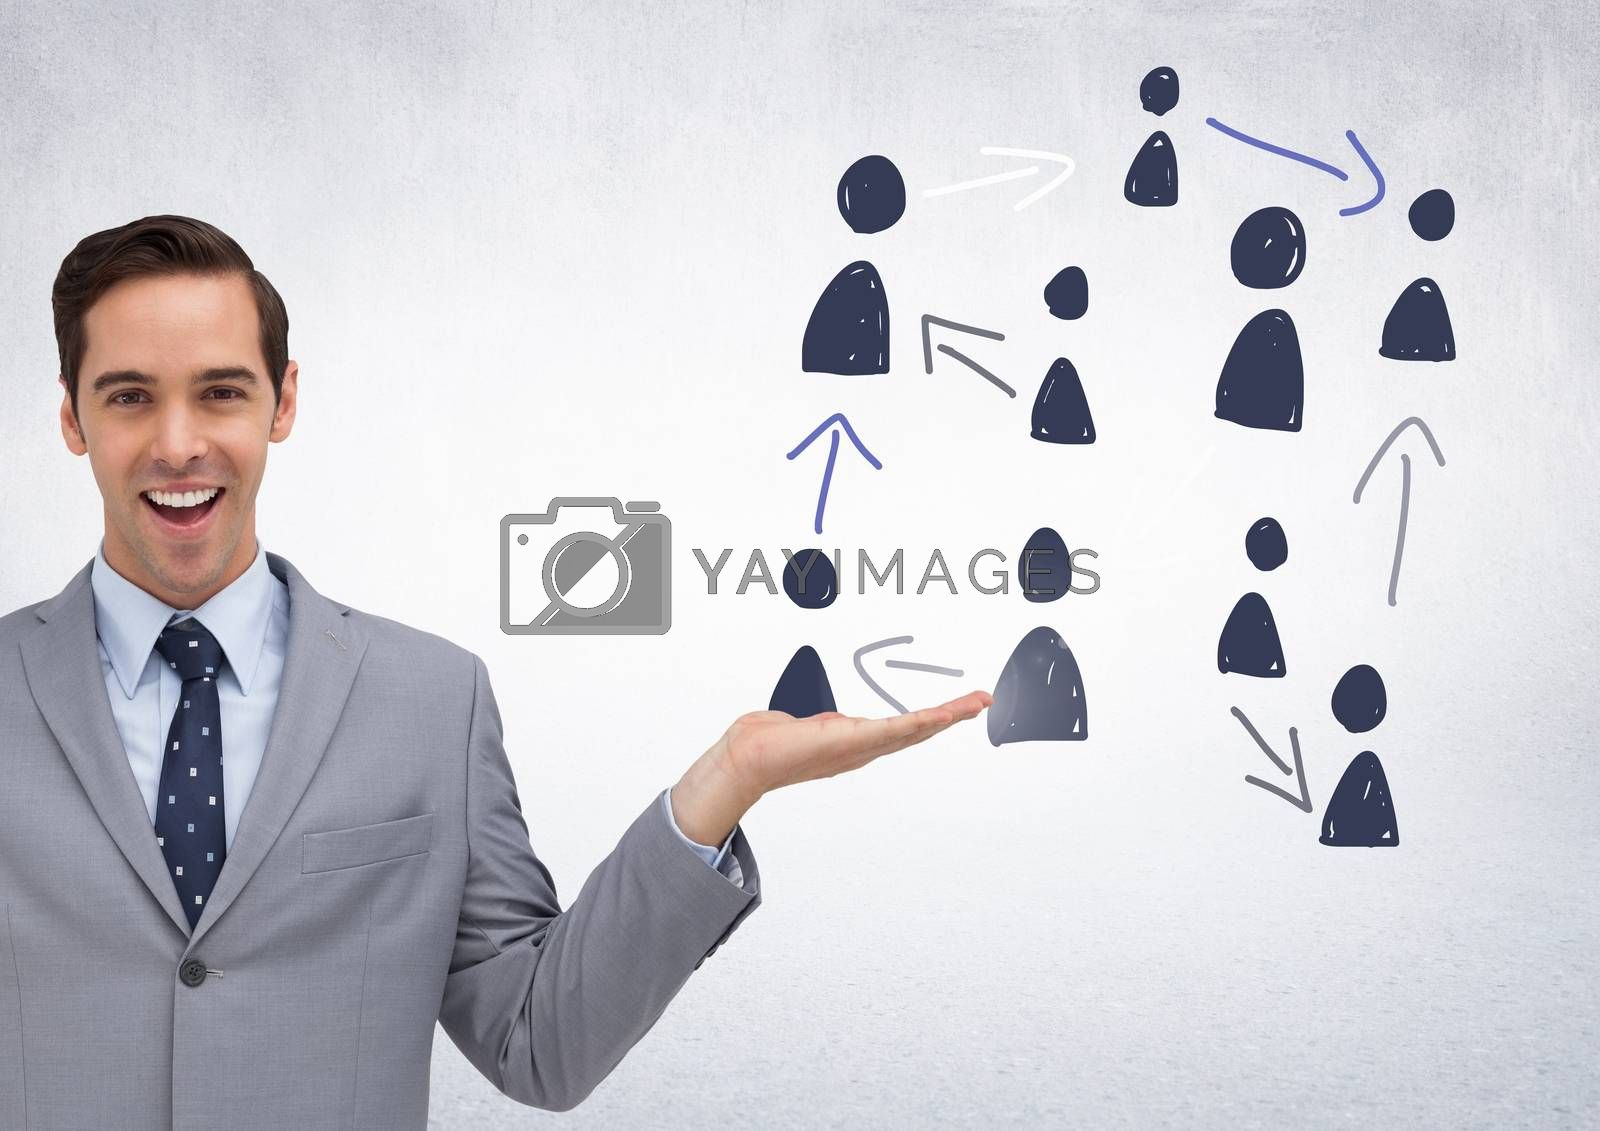 Digital composite of Hand-drawn people profile icons with open hand of businessman